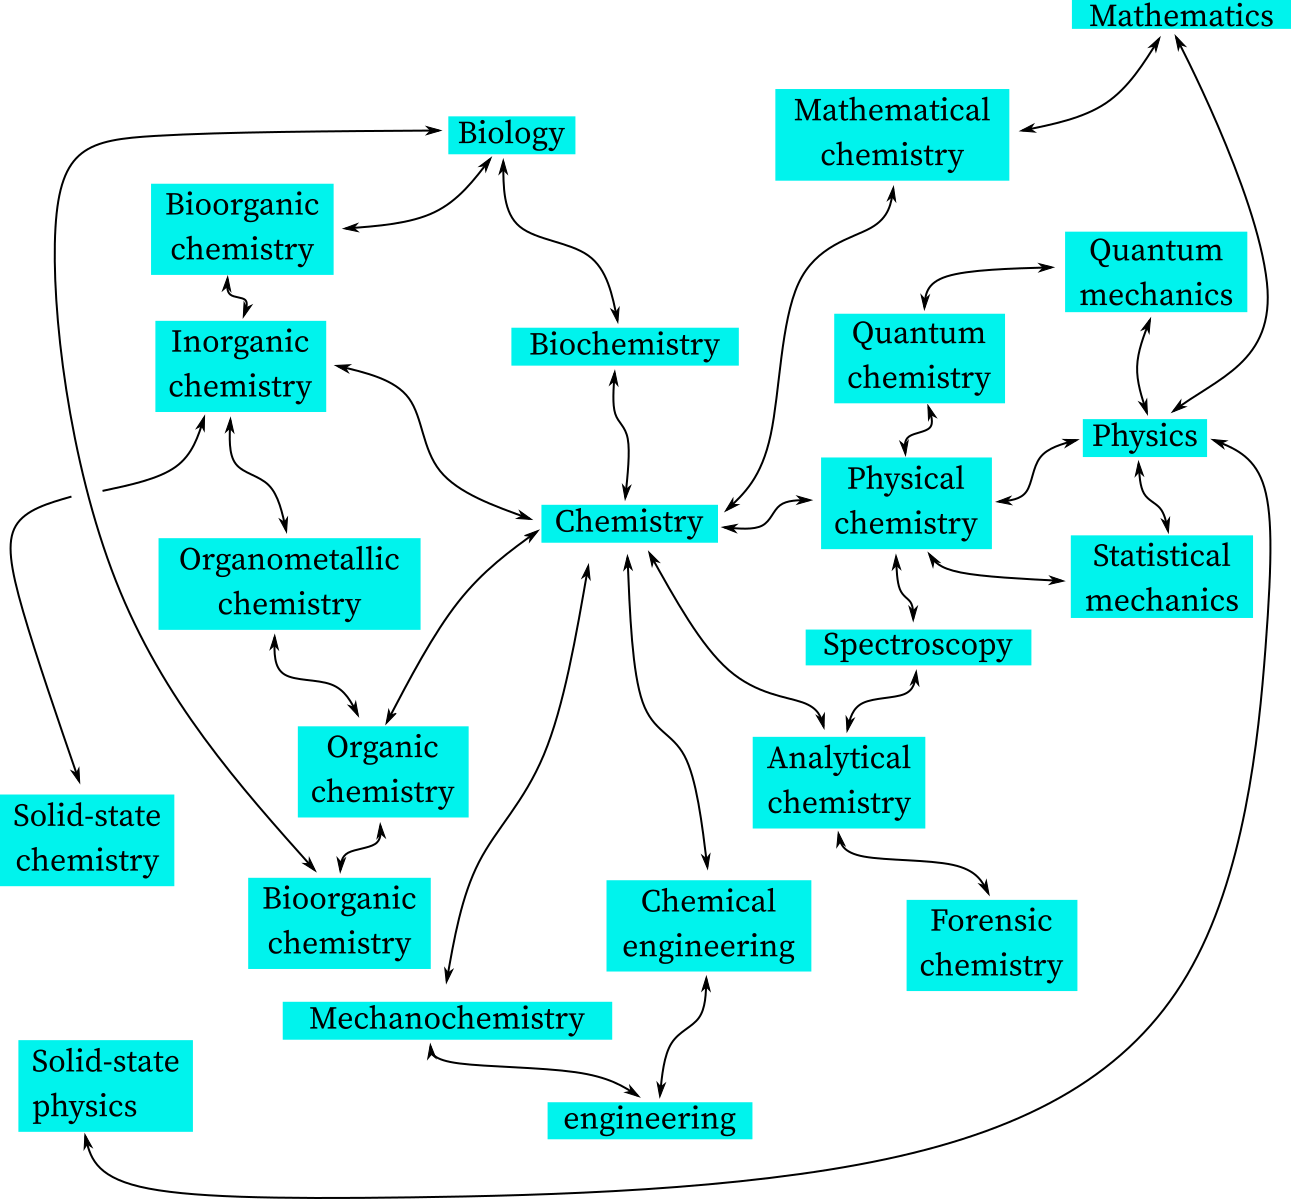 Interconnections among various branches of chemistry